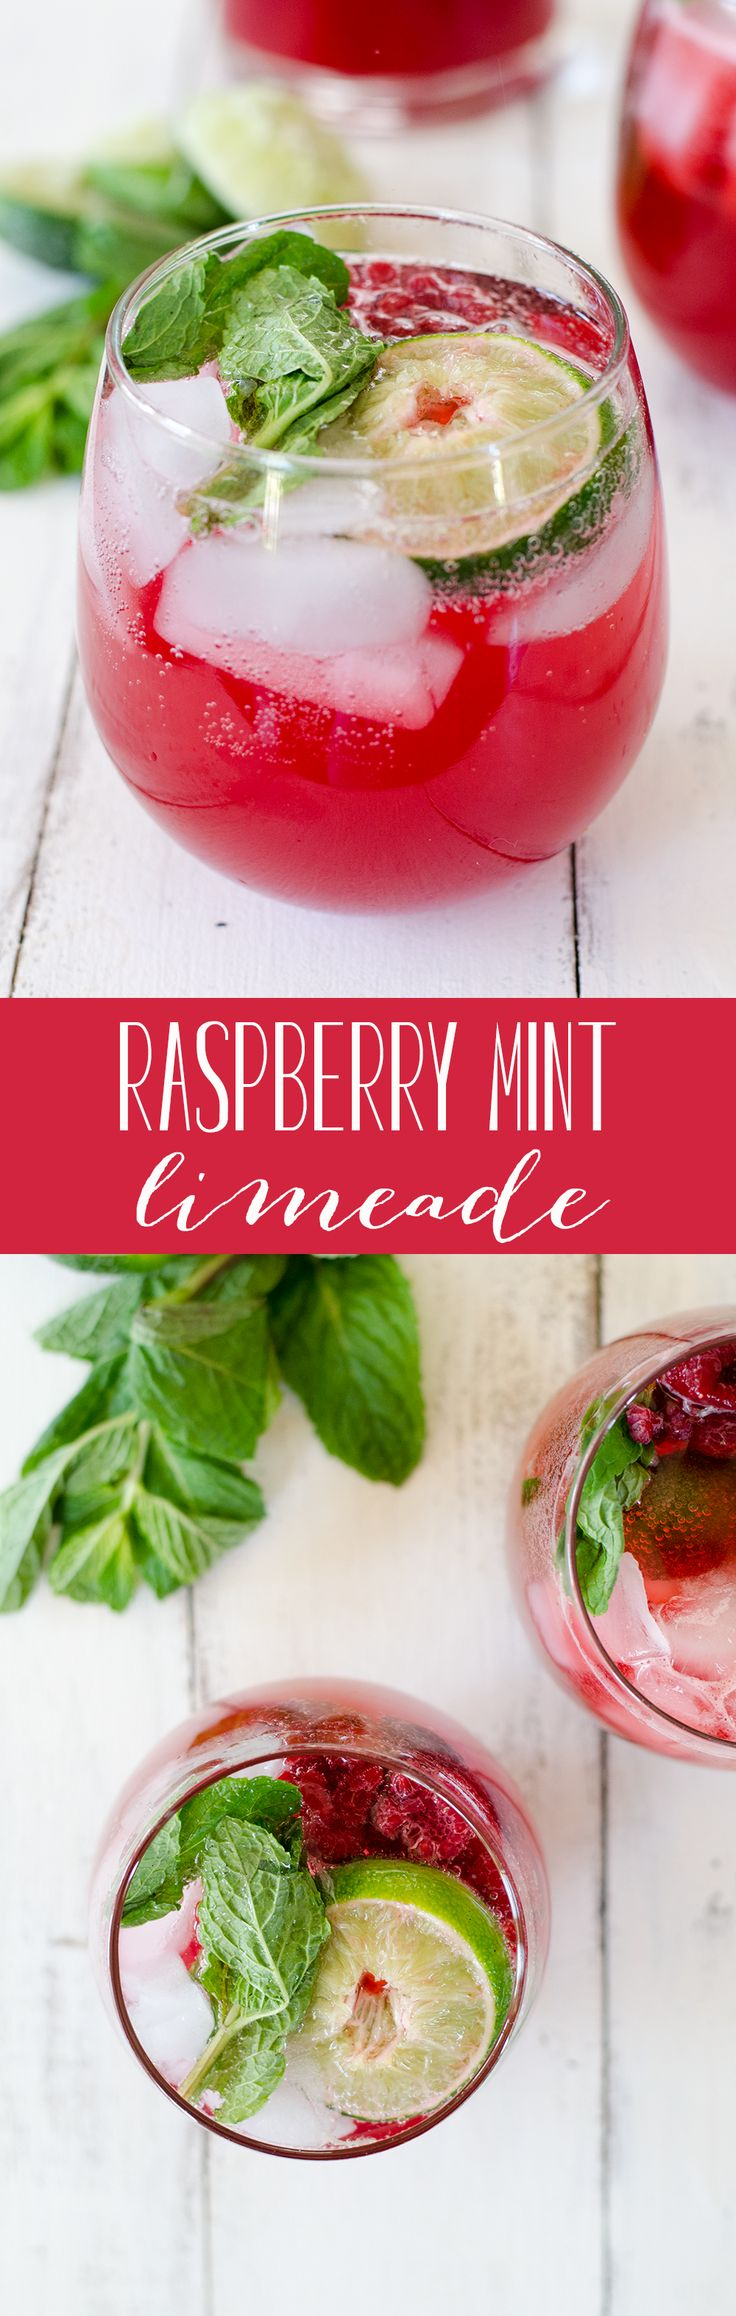 Raspberry Mint Limeade! A refreshing drink perfect for summer! Vegan, gluten-free and low-sugar. | www.delishknowledge.com